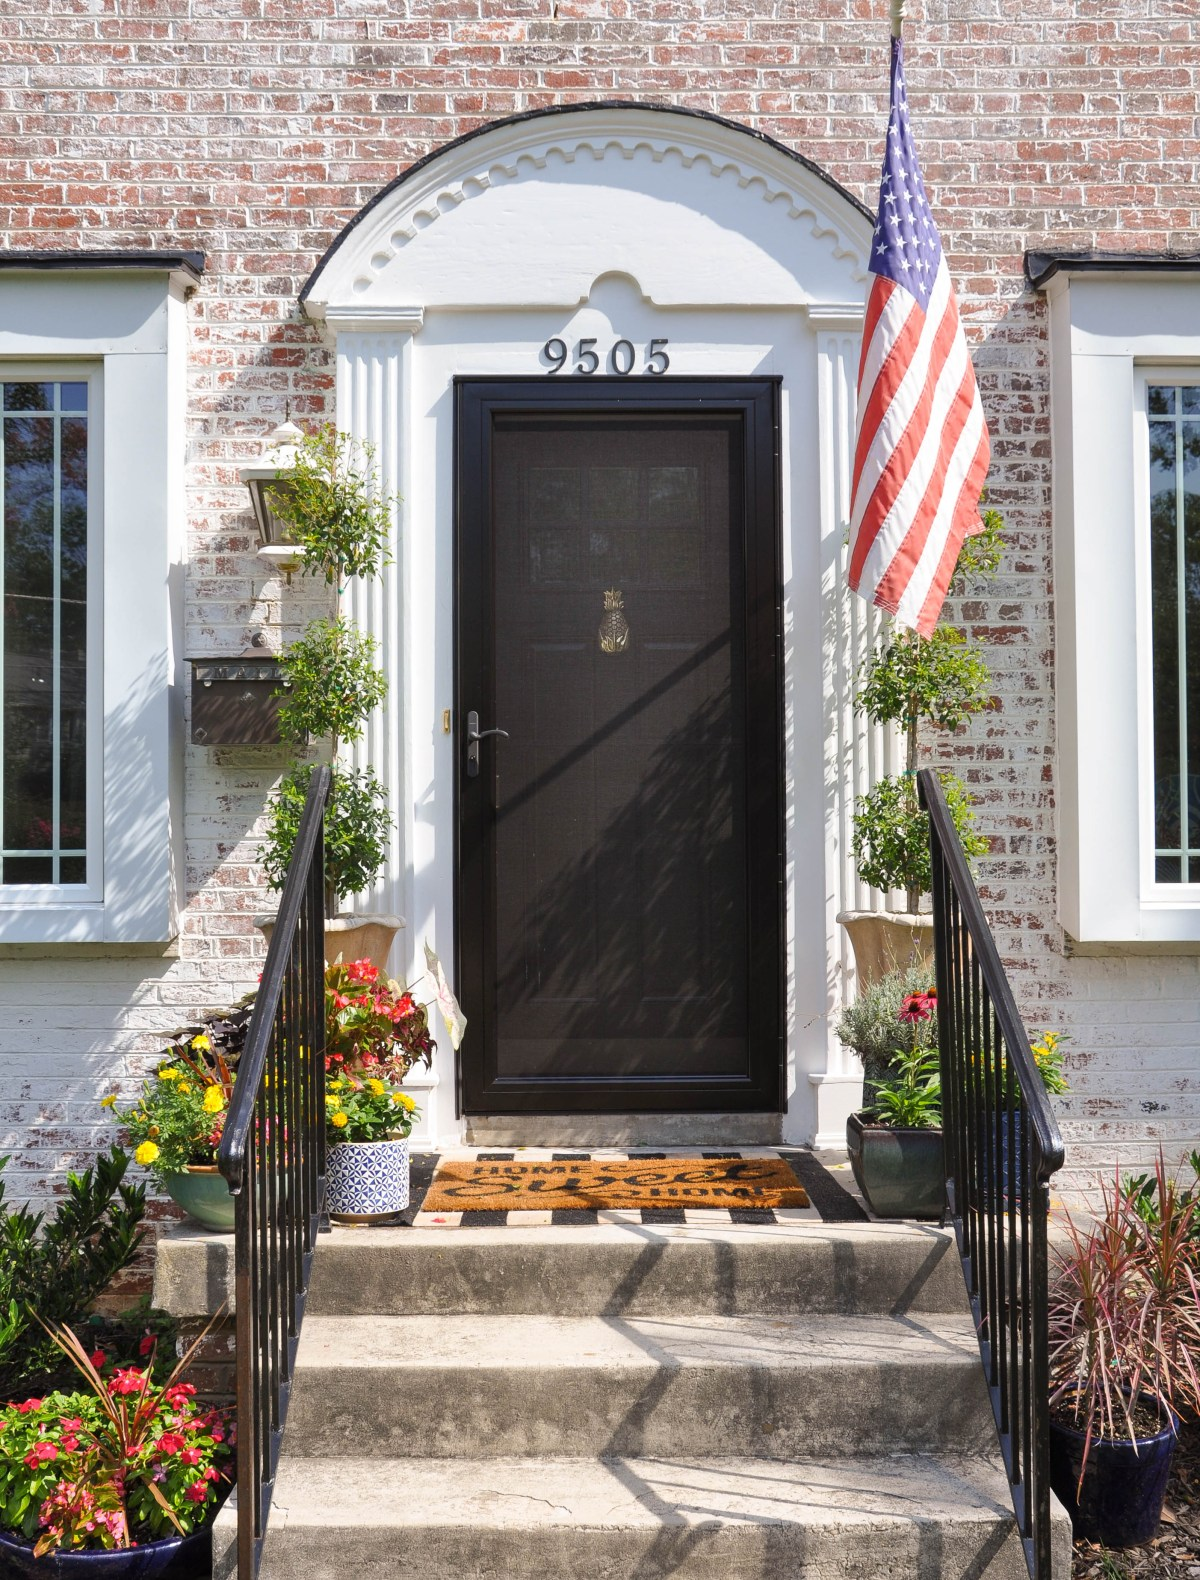 The front entry of a 1940s colonial brick home is brightened by an array of colorful summertime flowers, two layered welcome mats, and a shiny brass door knocker.